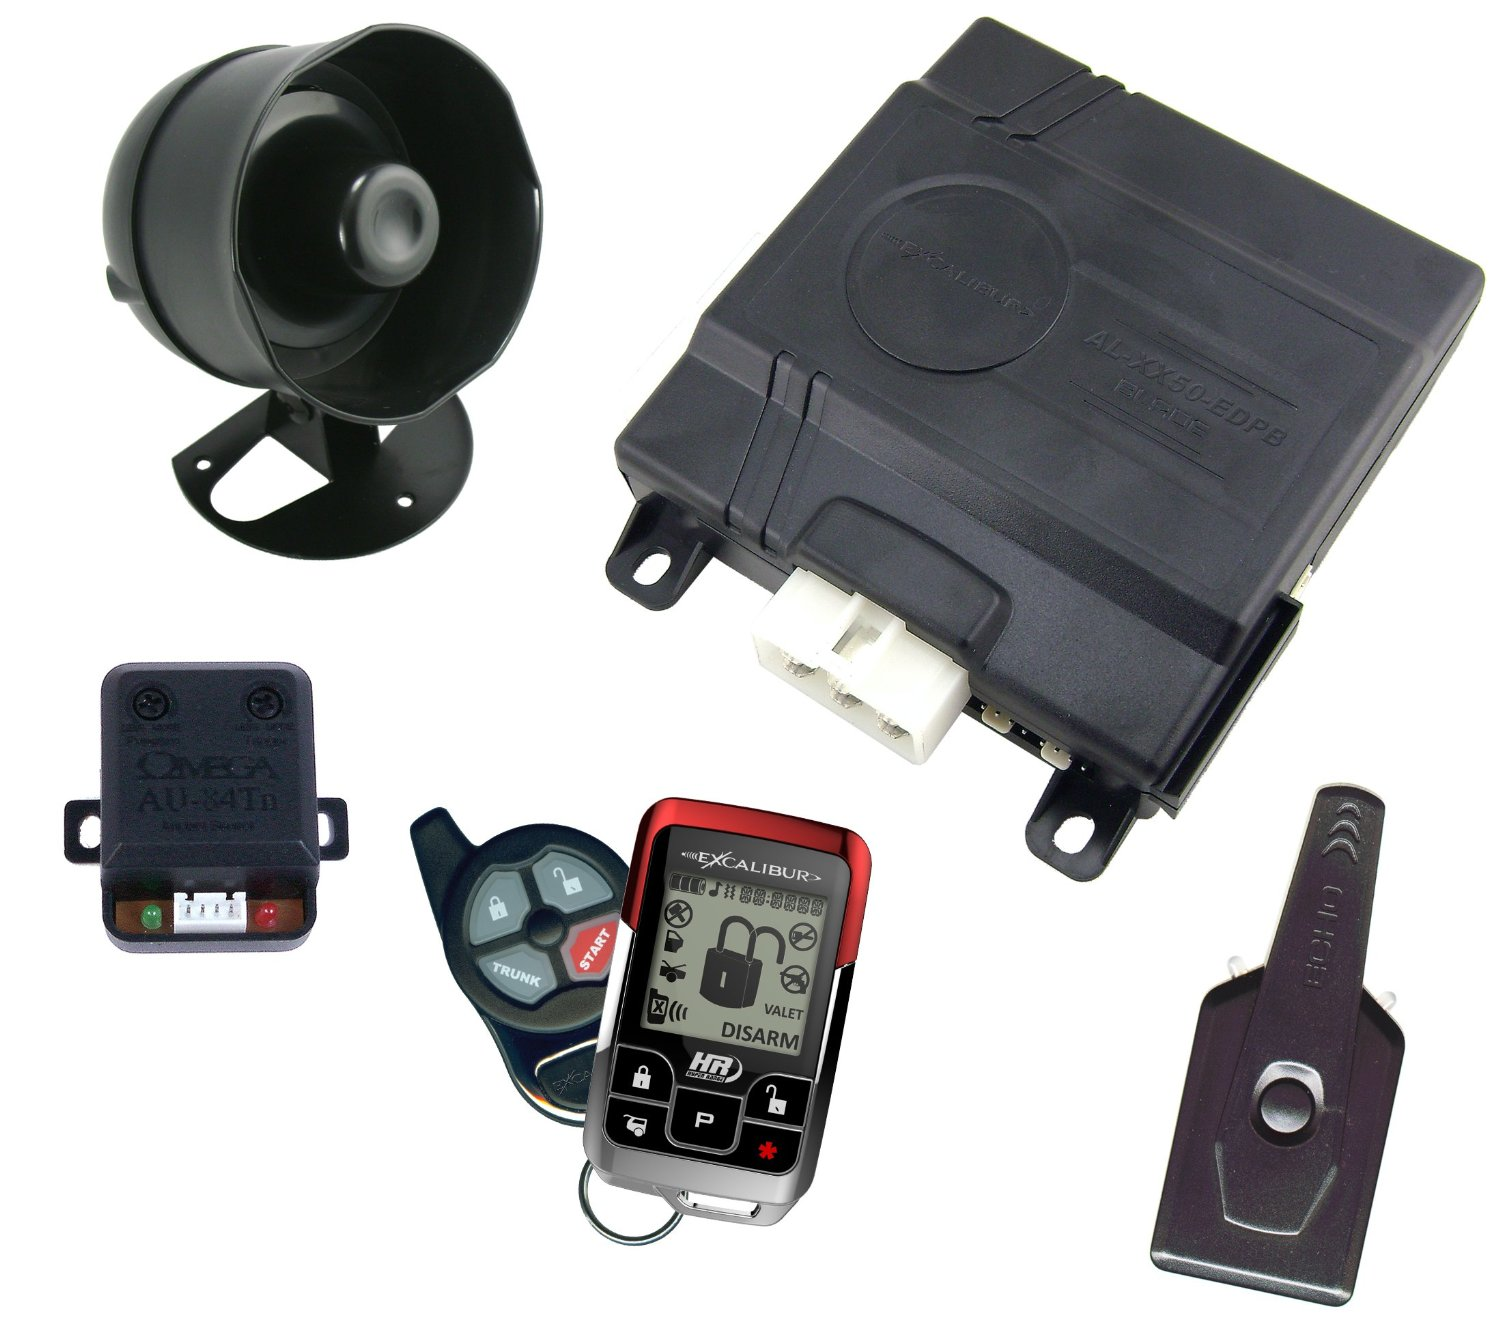 Excalibur Vehicle Security Alarms